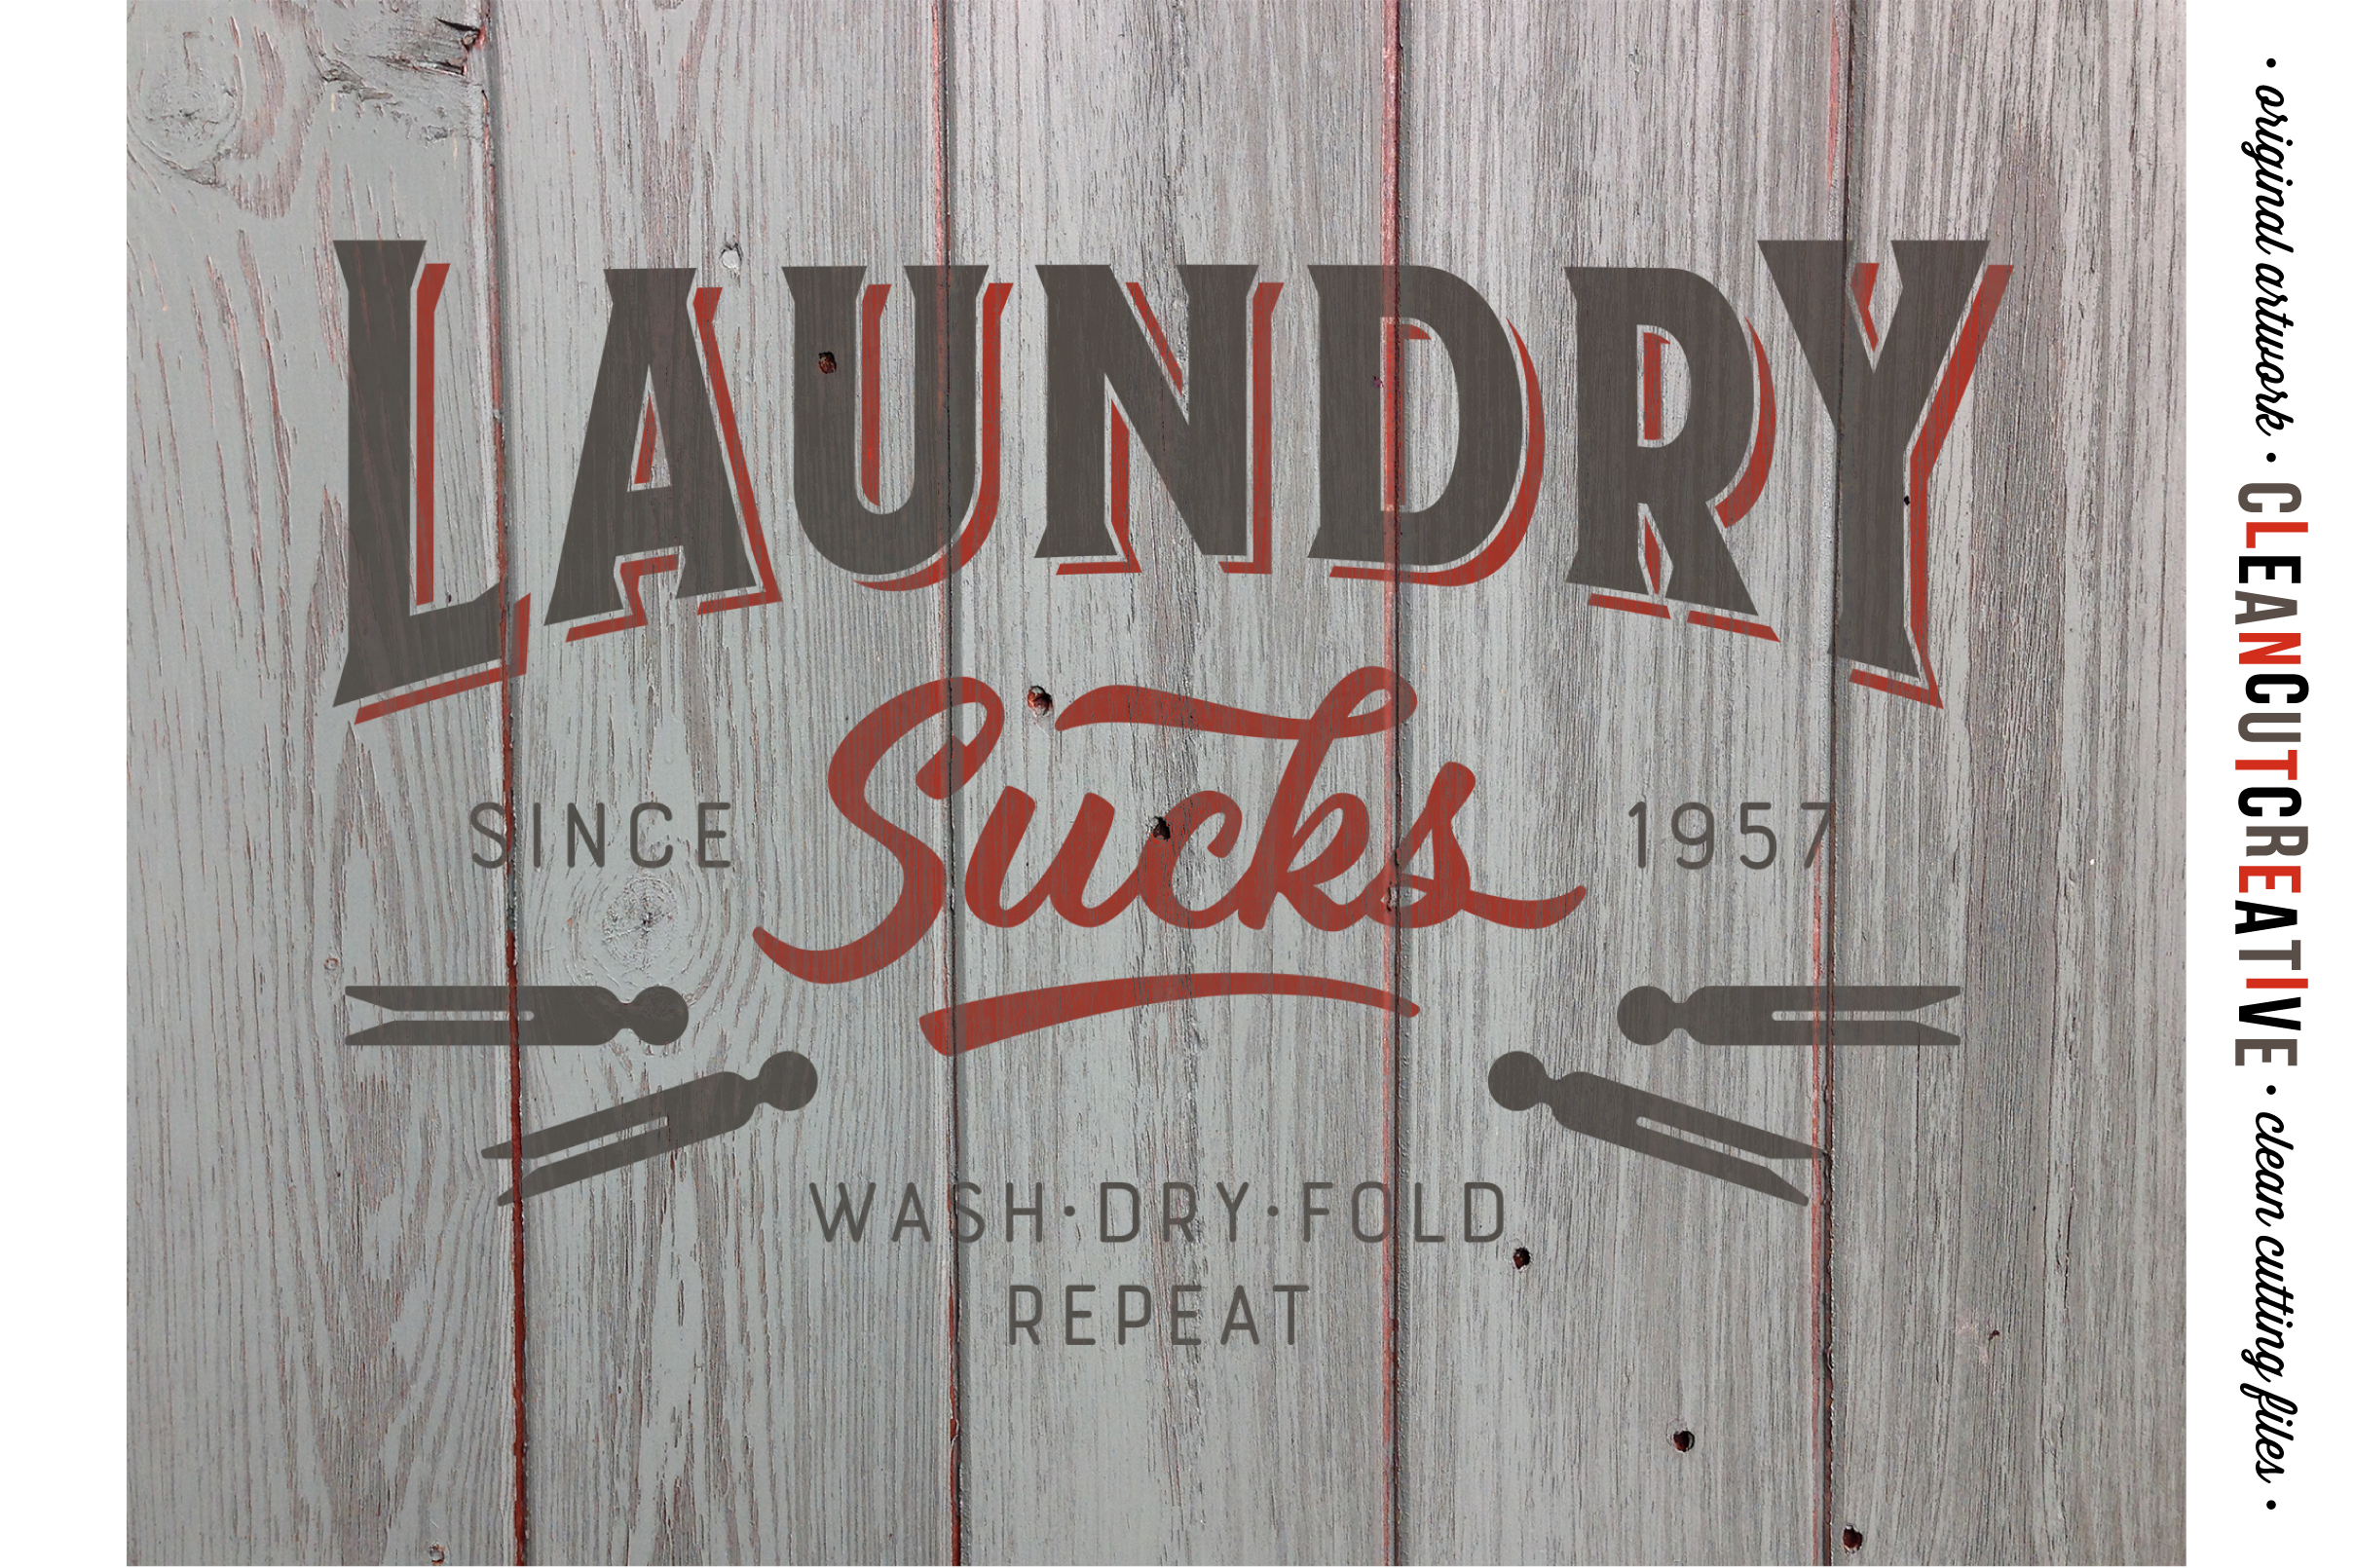 Laundry Sucks :) - SVG DXF EPS PNG - Cricut & Silhouette - clean cutting files example image 3